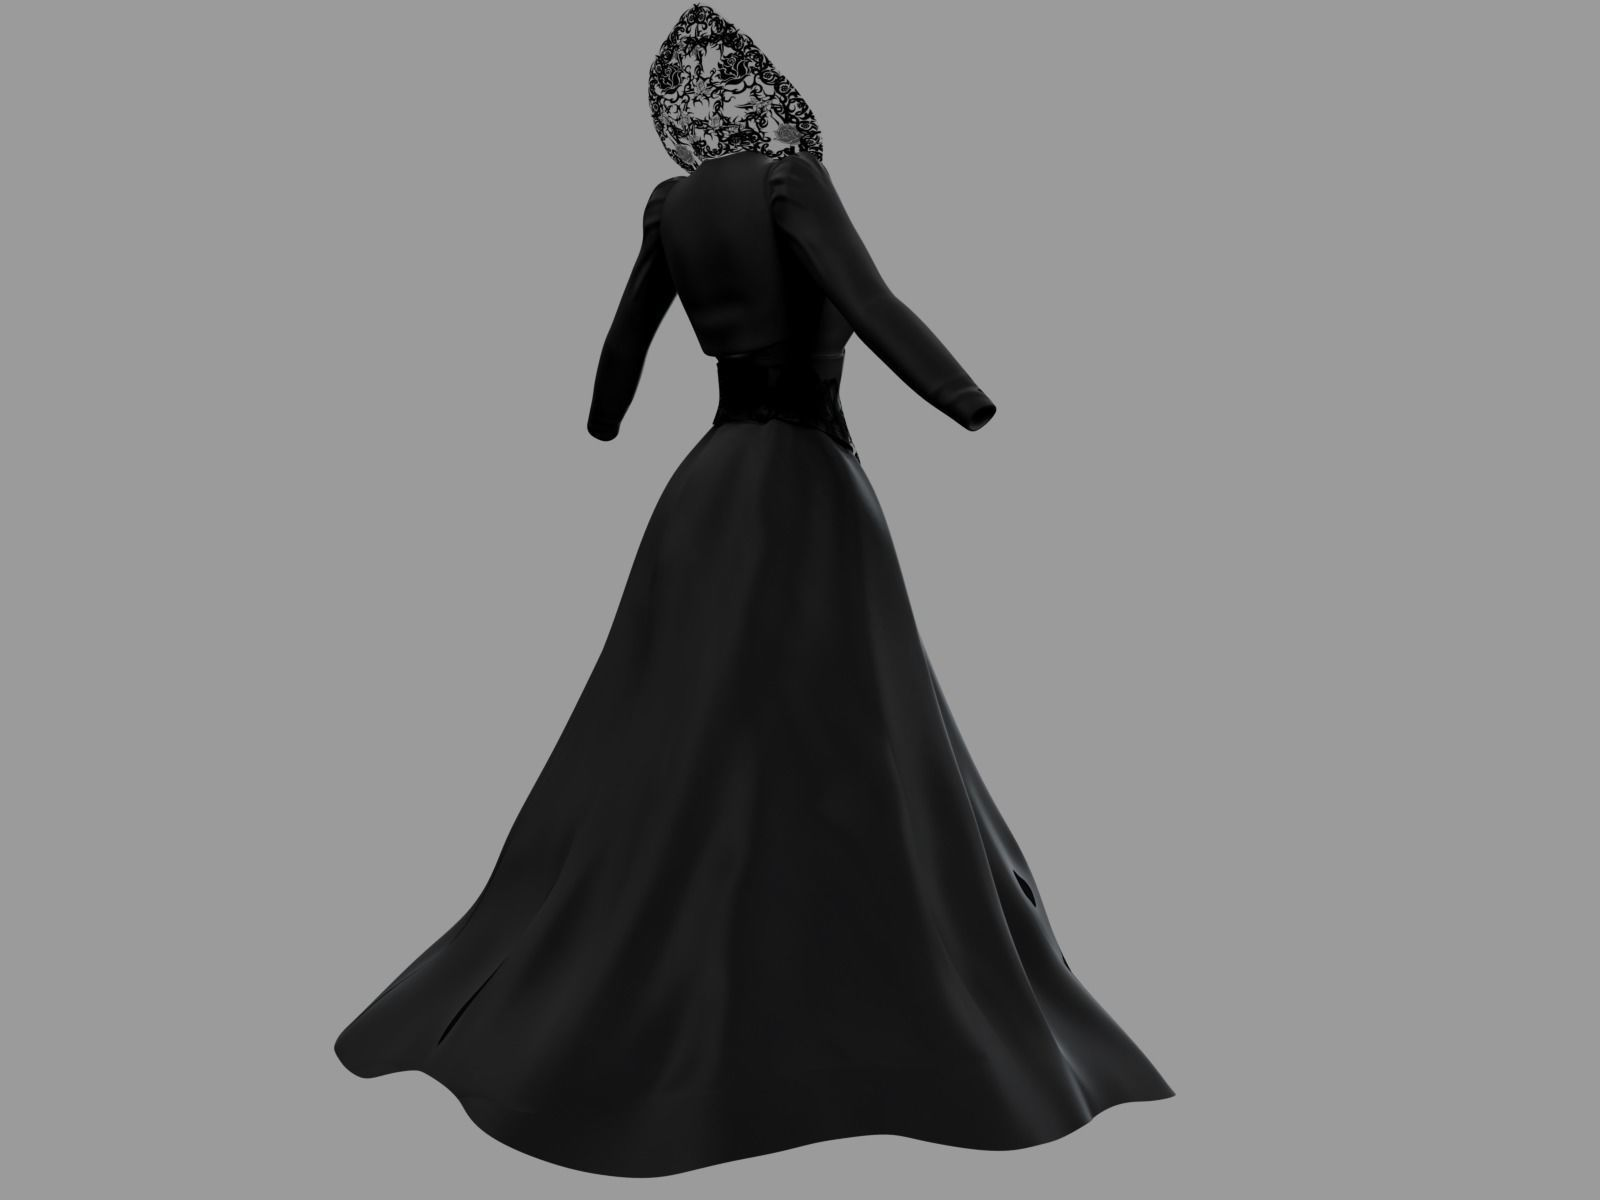 bc38cb50b68 Victorian Gothic Dress 4 Low-poly 3D model